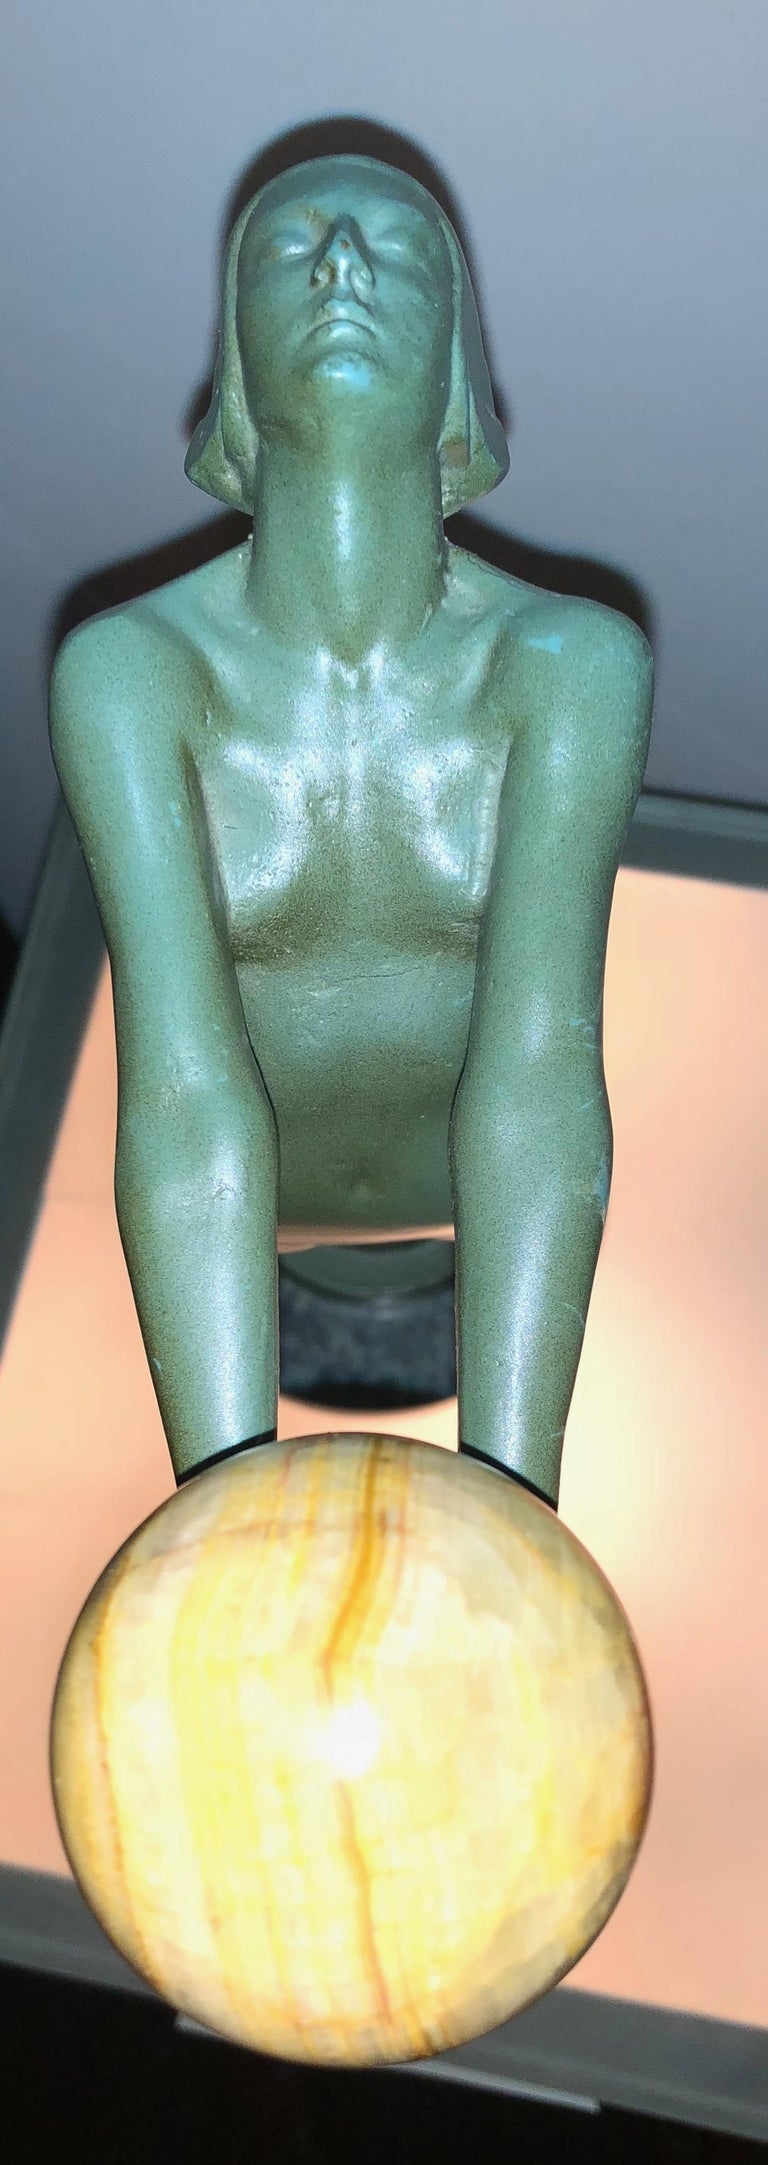 Early 20th Century Lueur Classic Art Deco Nude Statue by Max Le Verrier For Sale